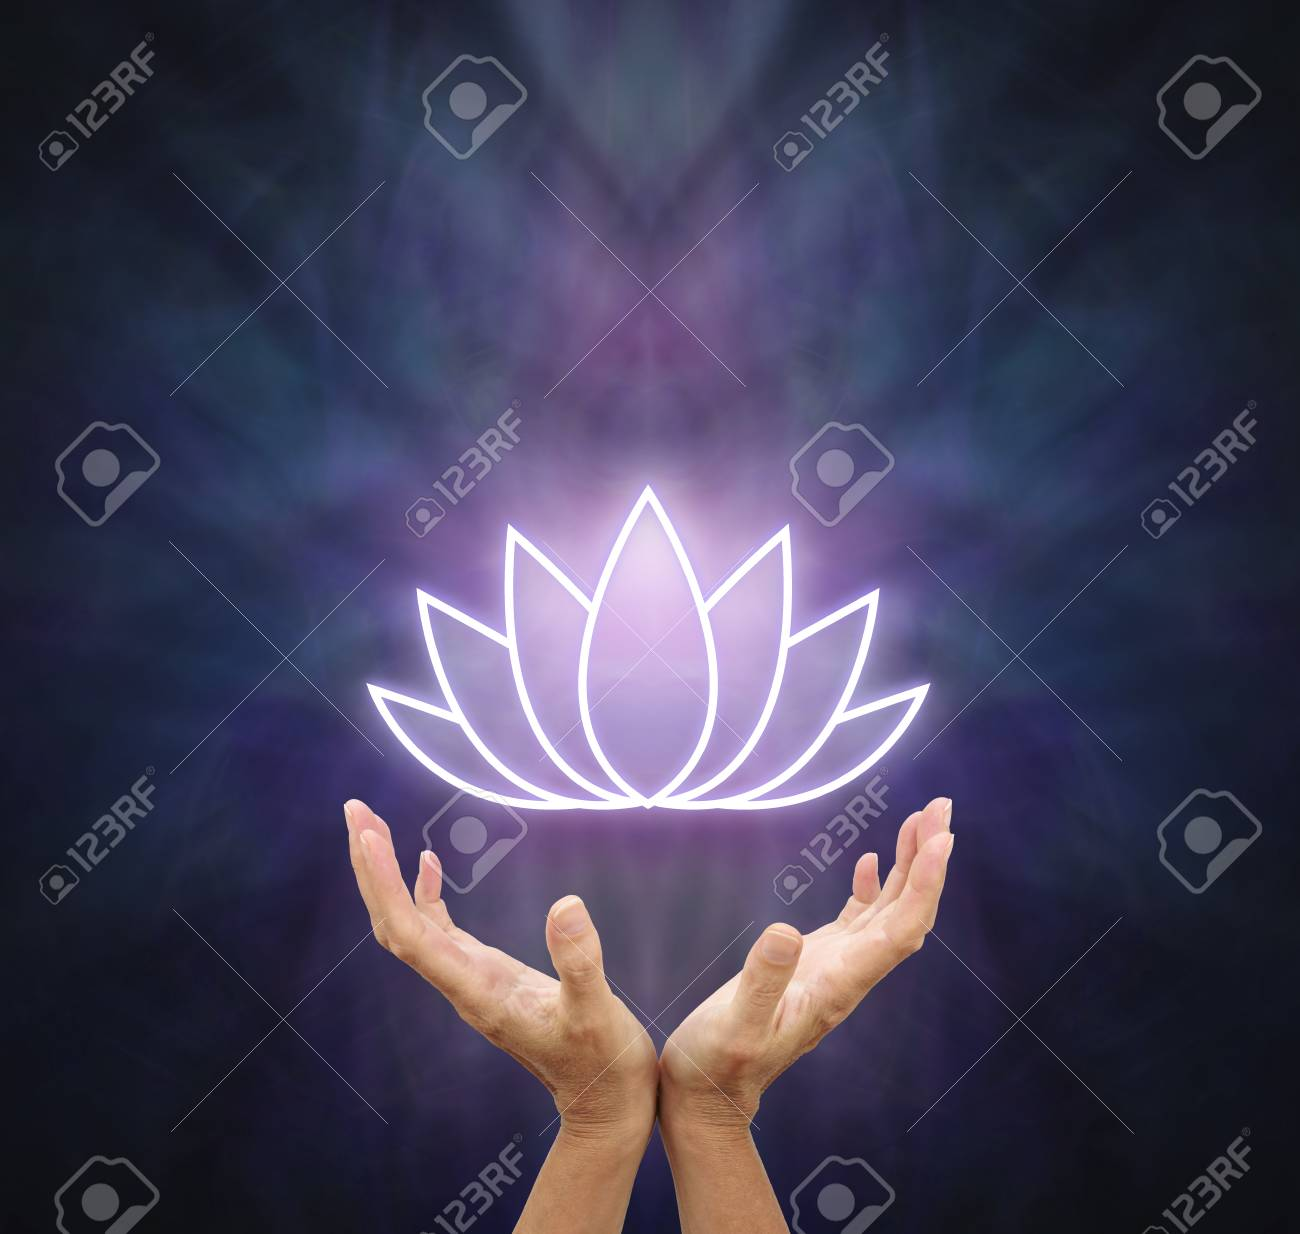 Symbolic Lotus Healing Energy Female Hands Reaching Up And